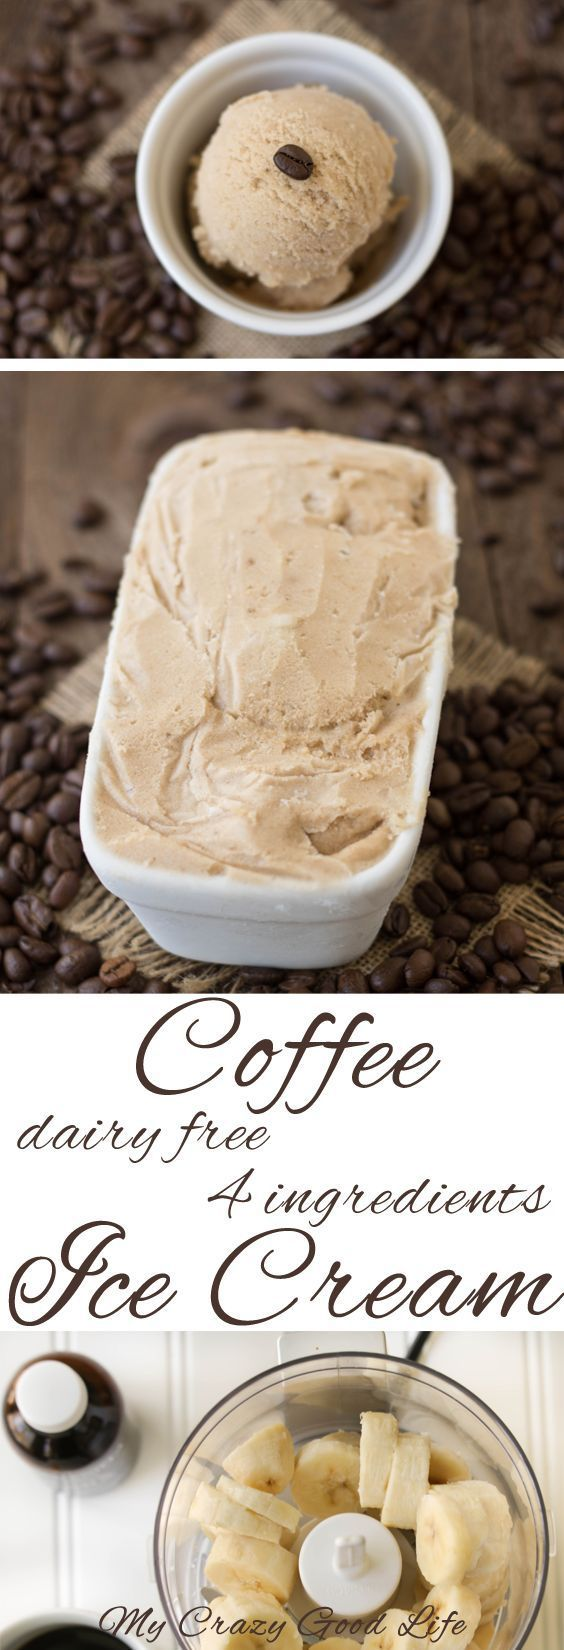 Dairy Free Coffee Ice Cream uses only four ingredients. I'm not going to say it's healthy, but... it's definitely a healthier ice cream choice.